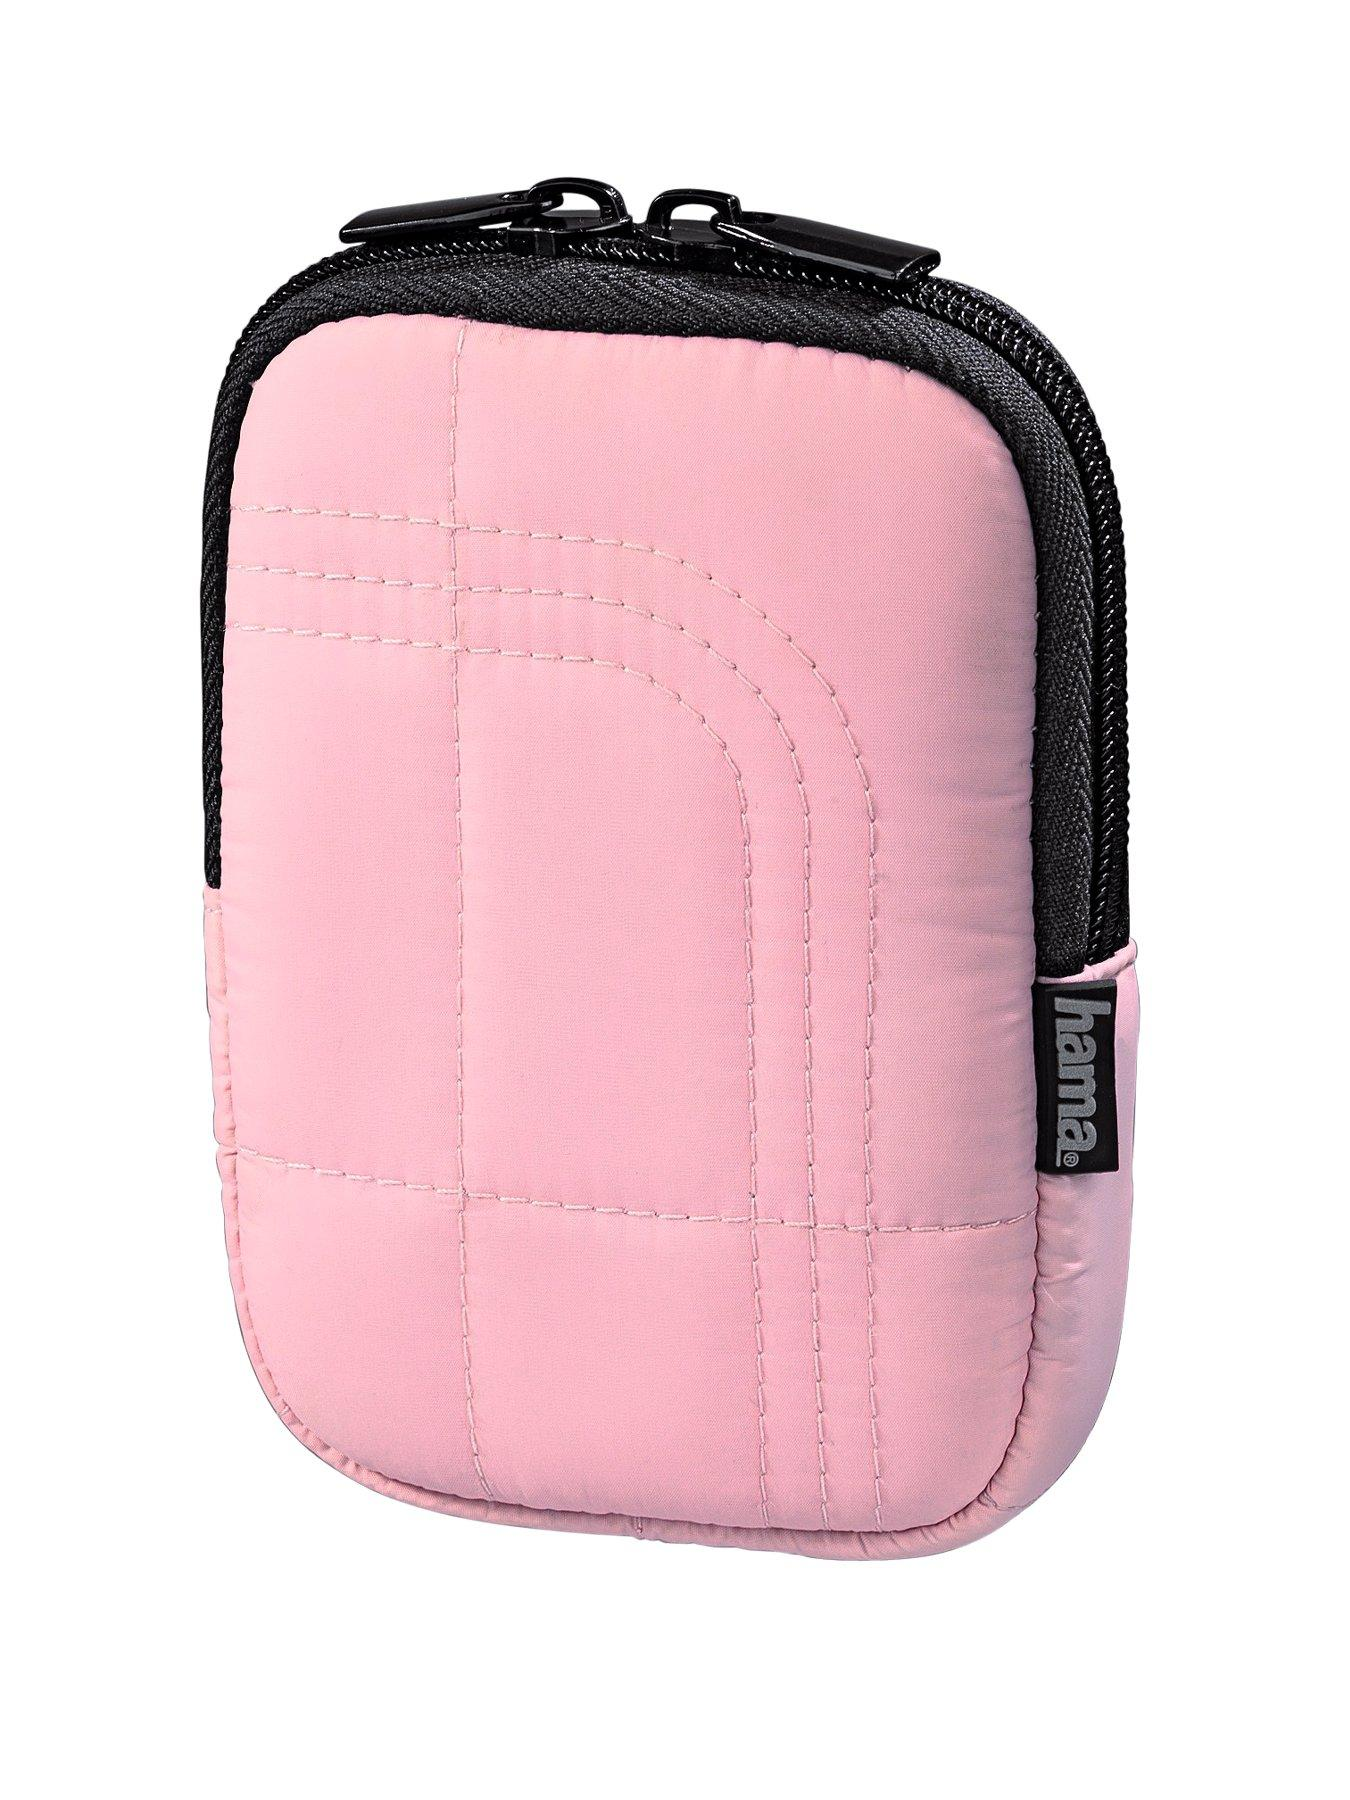 HAMA Fancy Memory 60C Camera Bag Pink at Very, from Littlewoods